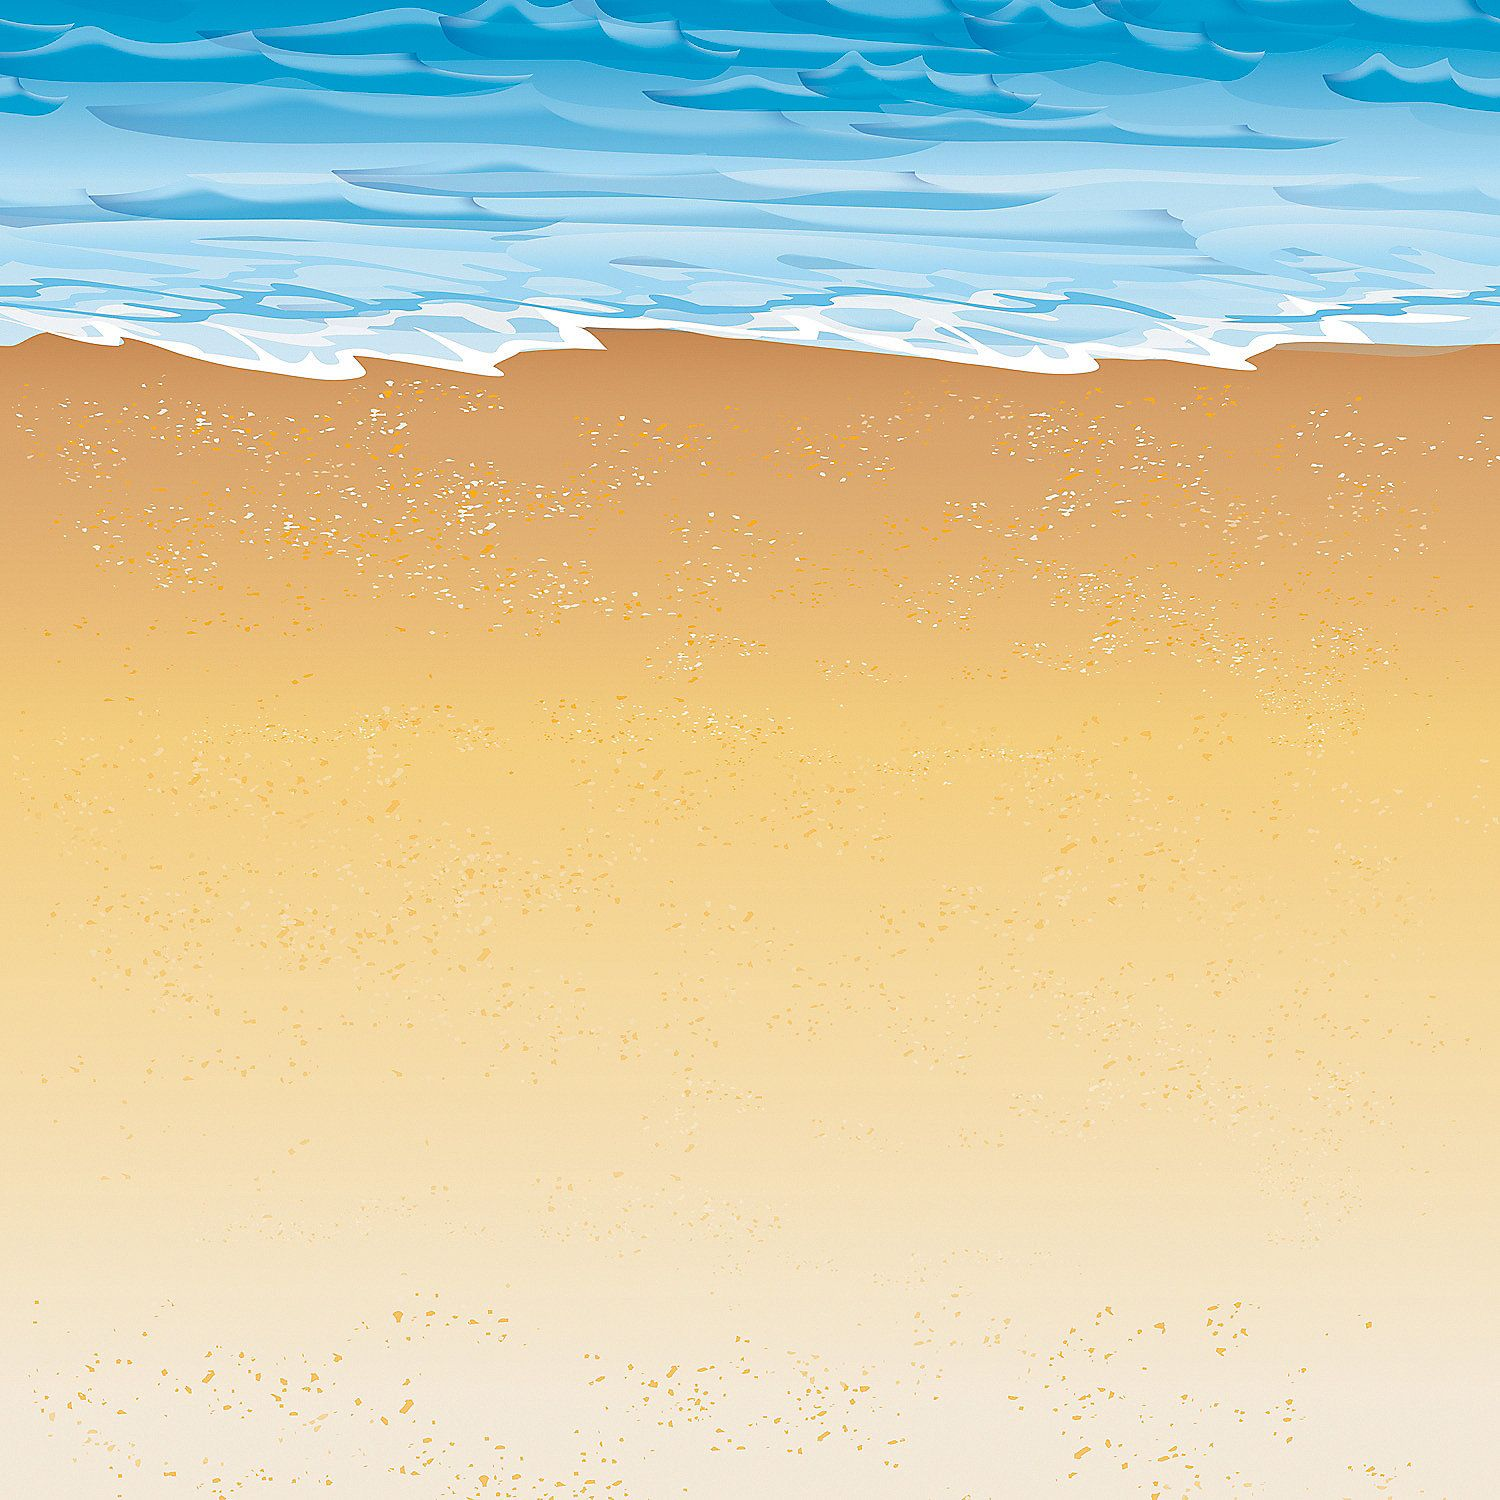 Design A Room Luau Beach Backdrop With Images Beach Backdrop